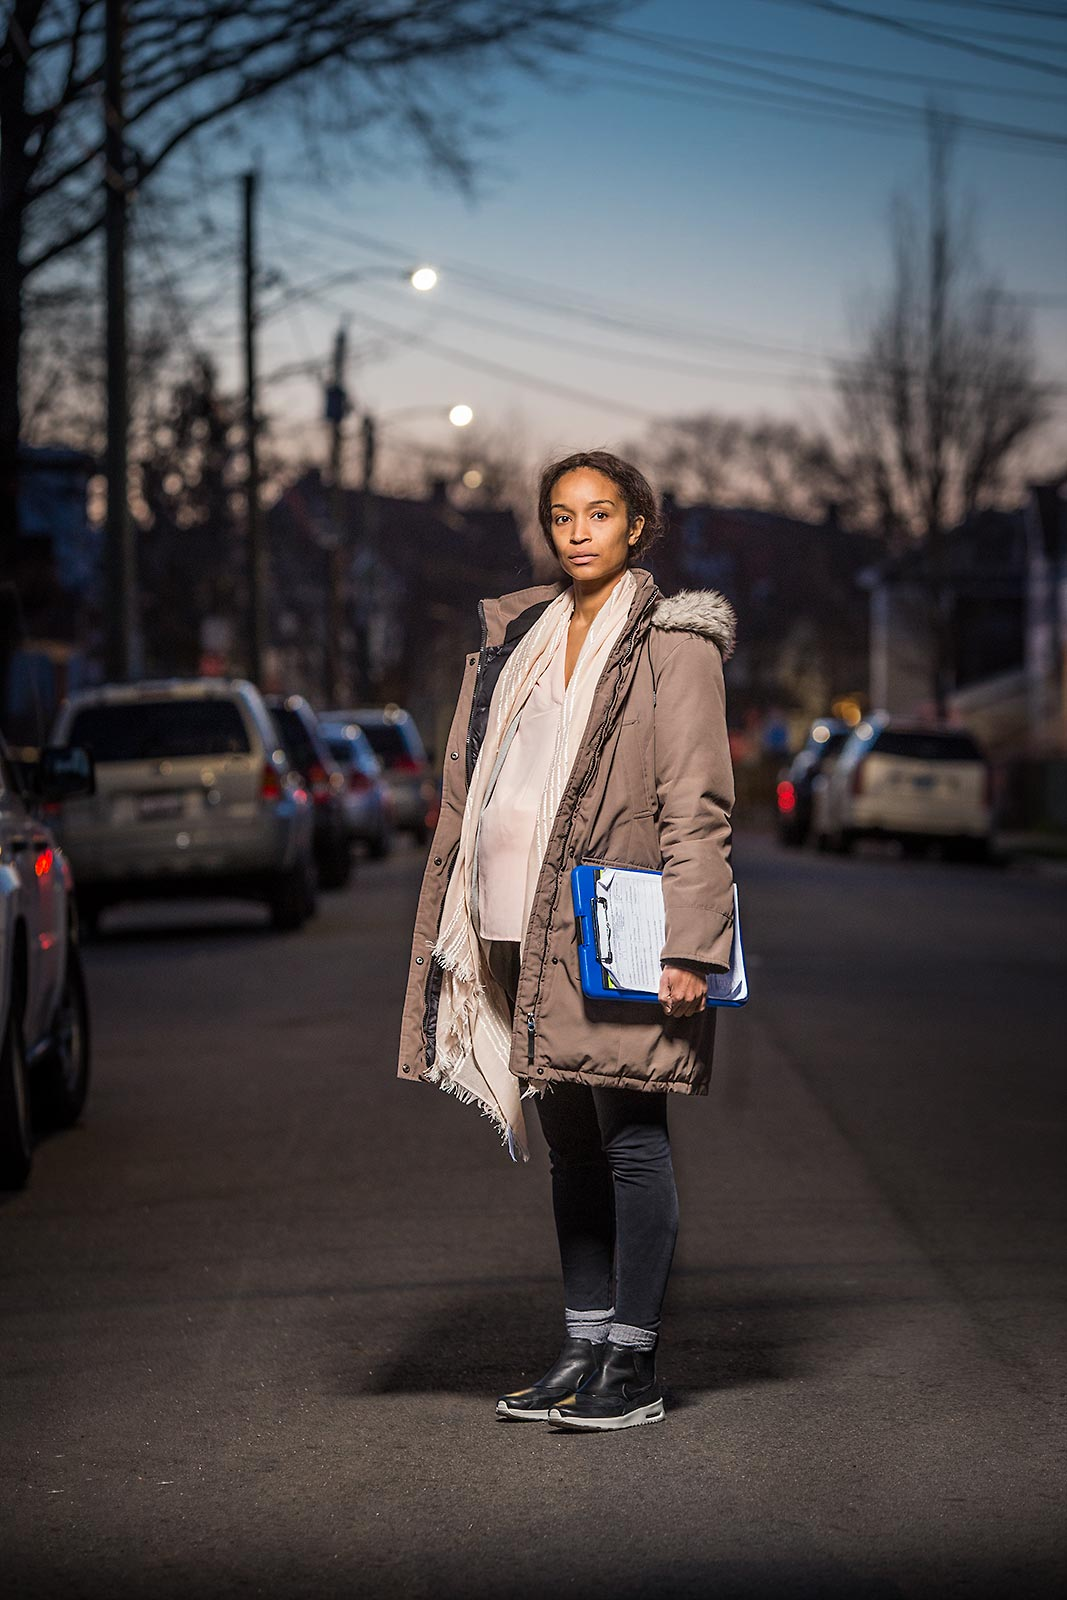 Night portrait of a pregnant African American social worker in Connecticut